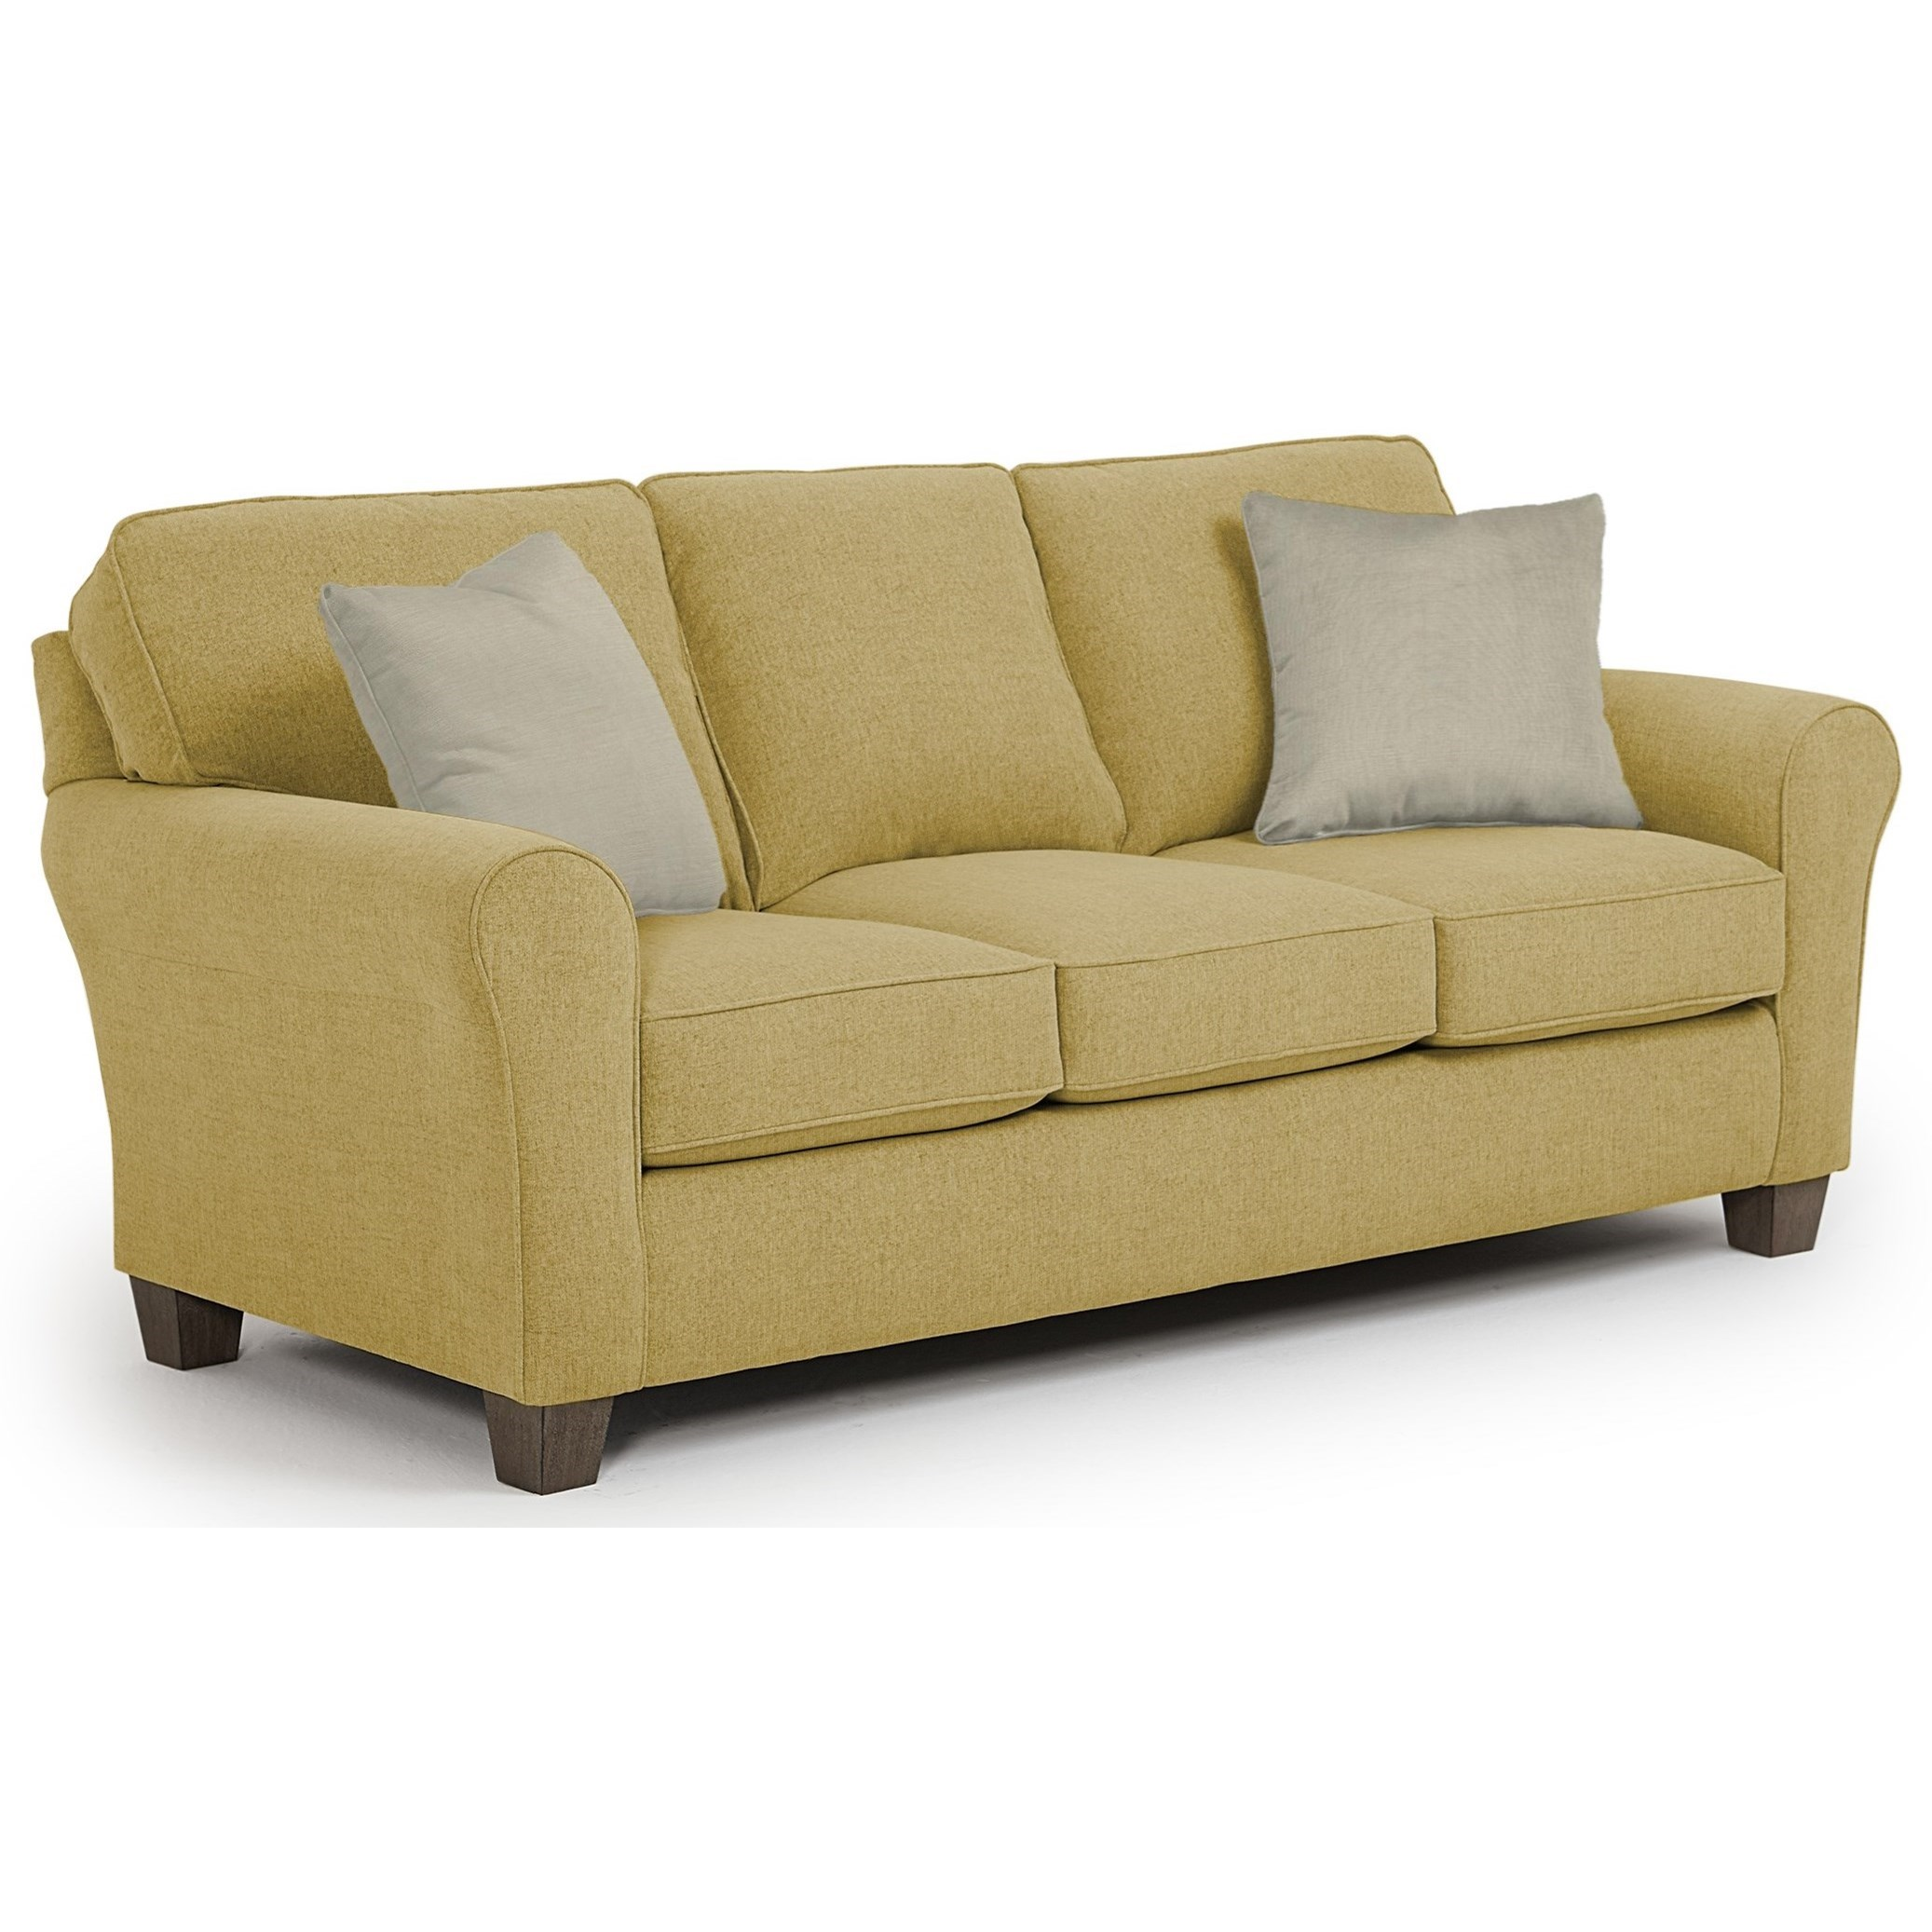 Annabel  Custom 3 Over 3 Sofa by Best Home Furnishings at Simply Home by Lindy's